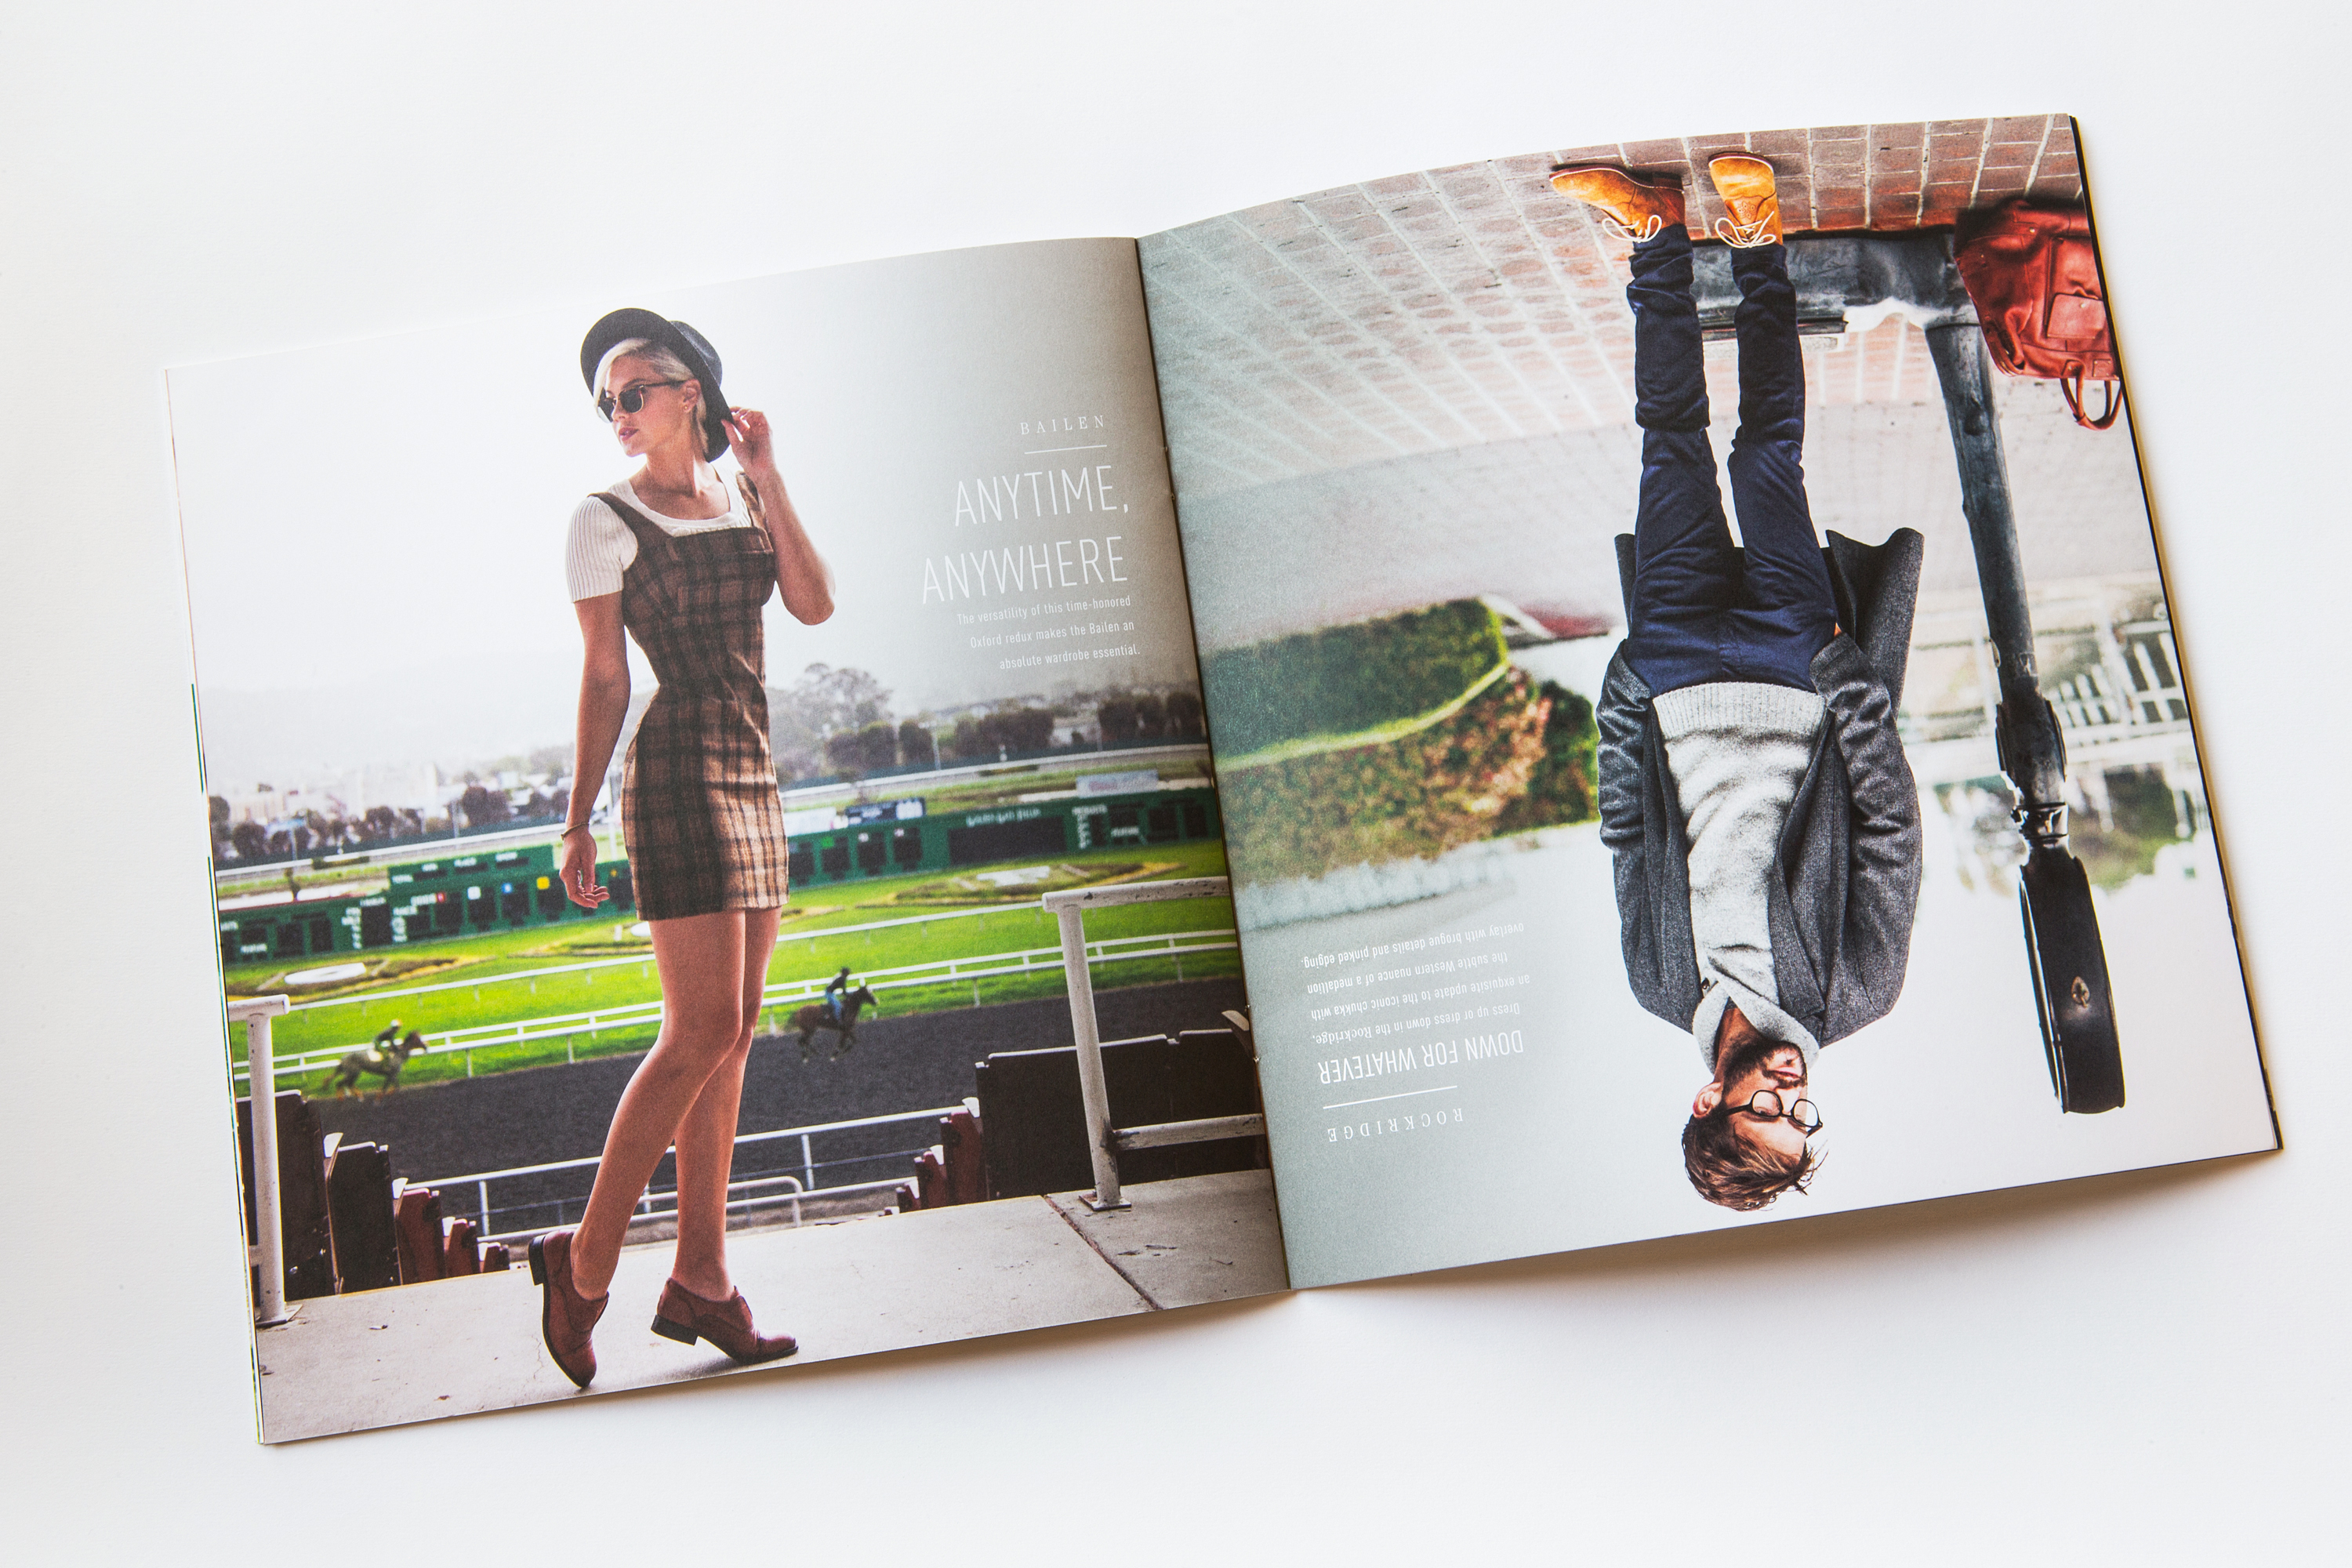 Ariat Two 24 Magazine spread with man and women modeling in fashionable boots